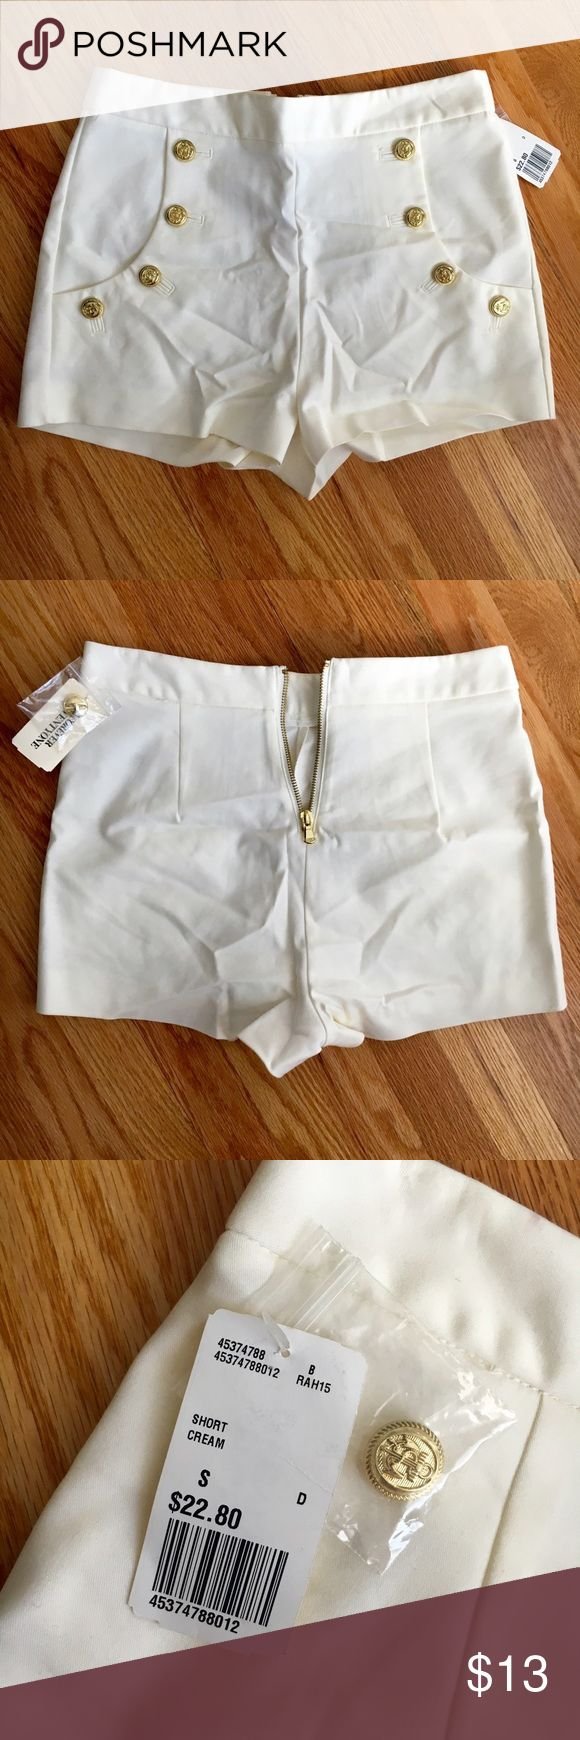 Forever 21 Nautical Shorts New! White Nautical Shorts. Zipper closure in back, comes with spare button. Forever 21 Shorts